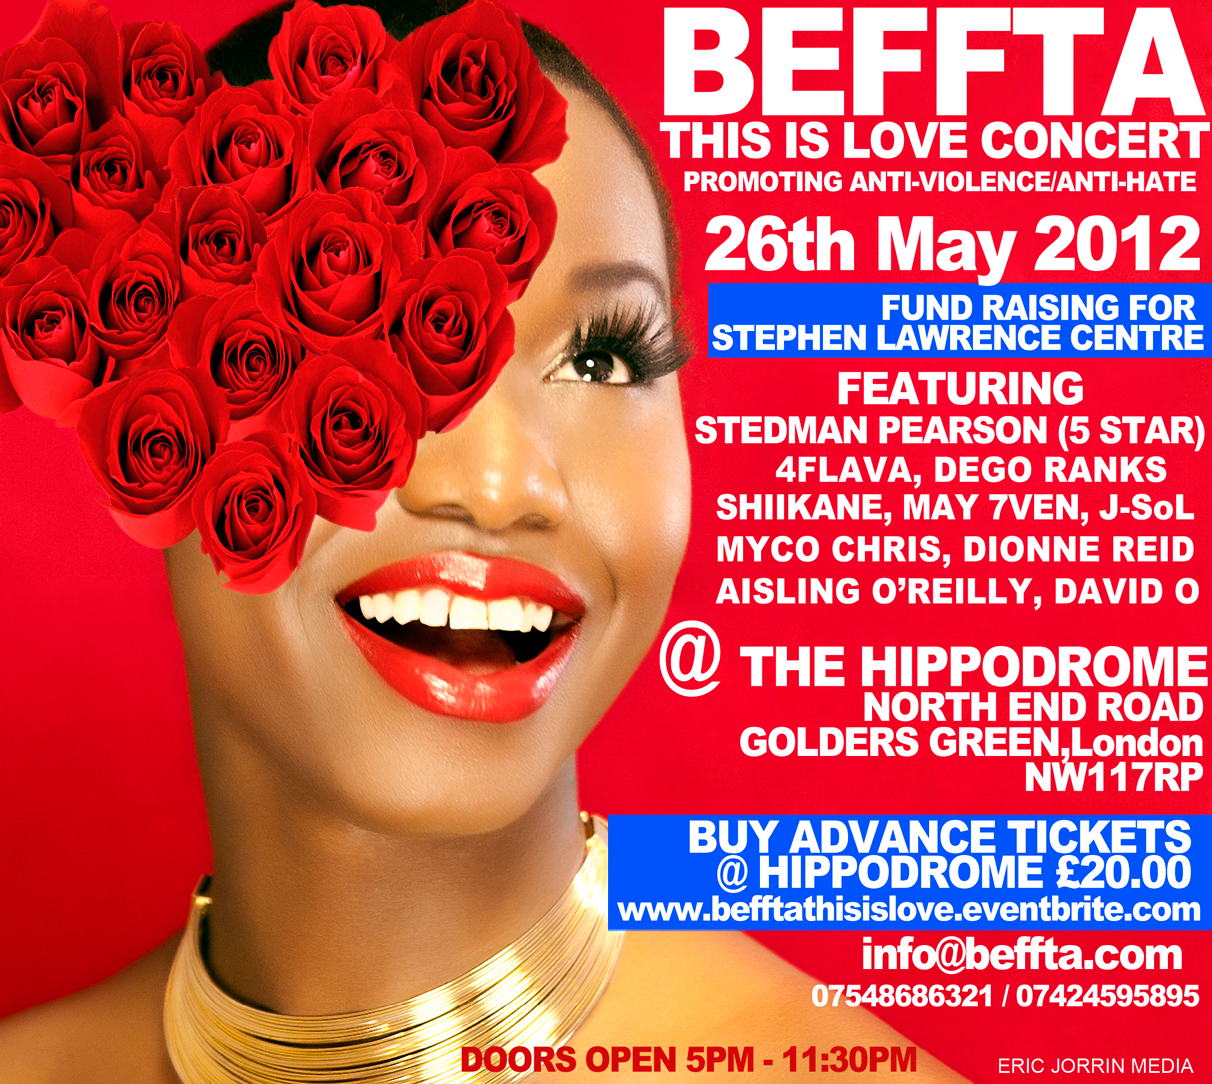 BEFFTA THIS IS LOVE CONCERT is raising funds and awareness for the Stephen Lawrence centre on 26th May at the Hippodrome, Golders Green